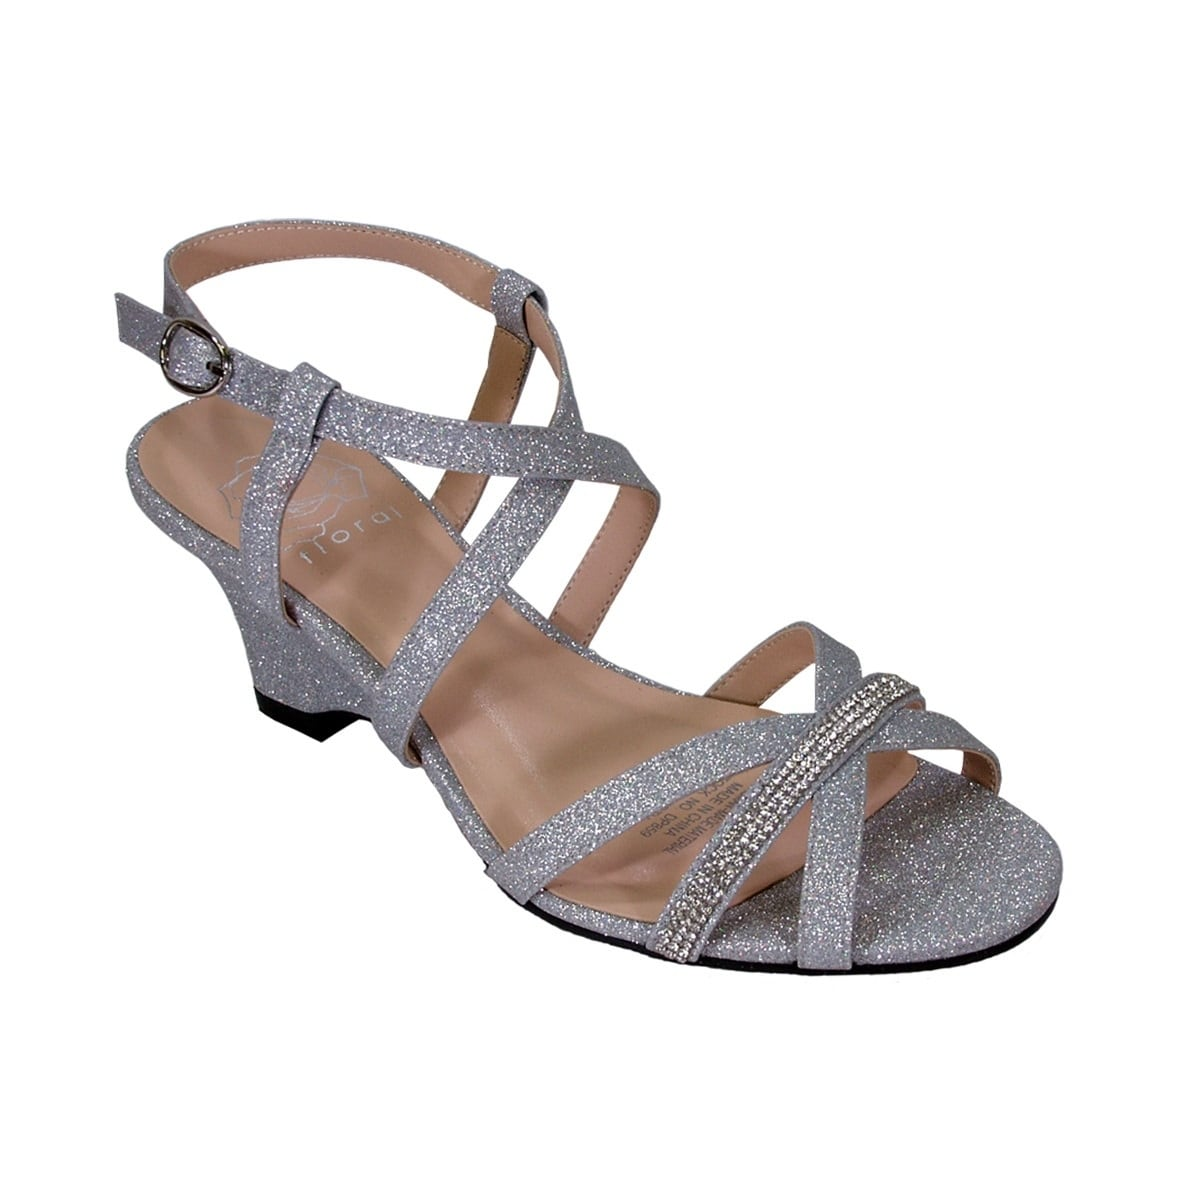 8f0319b8d Shop FLORAL Joanne Women Extra Wide Width Rhinestone Straps Wedge Sandals -  Free Shipping Today - Overstock - 20005072